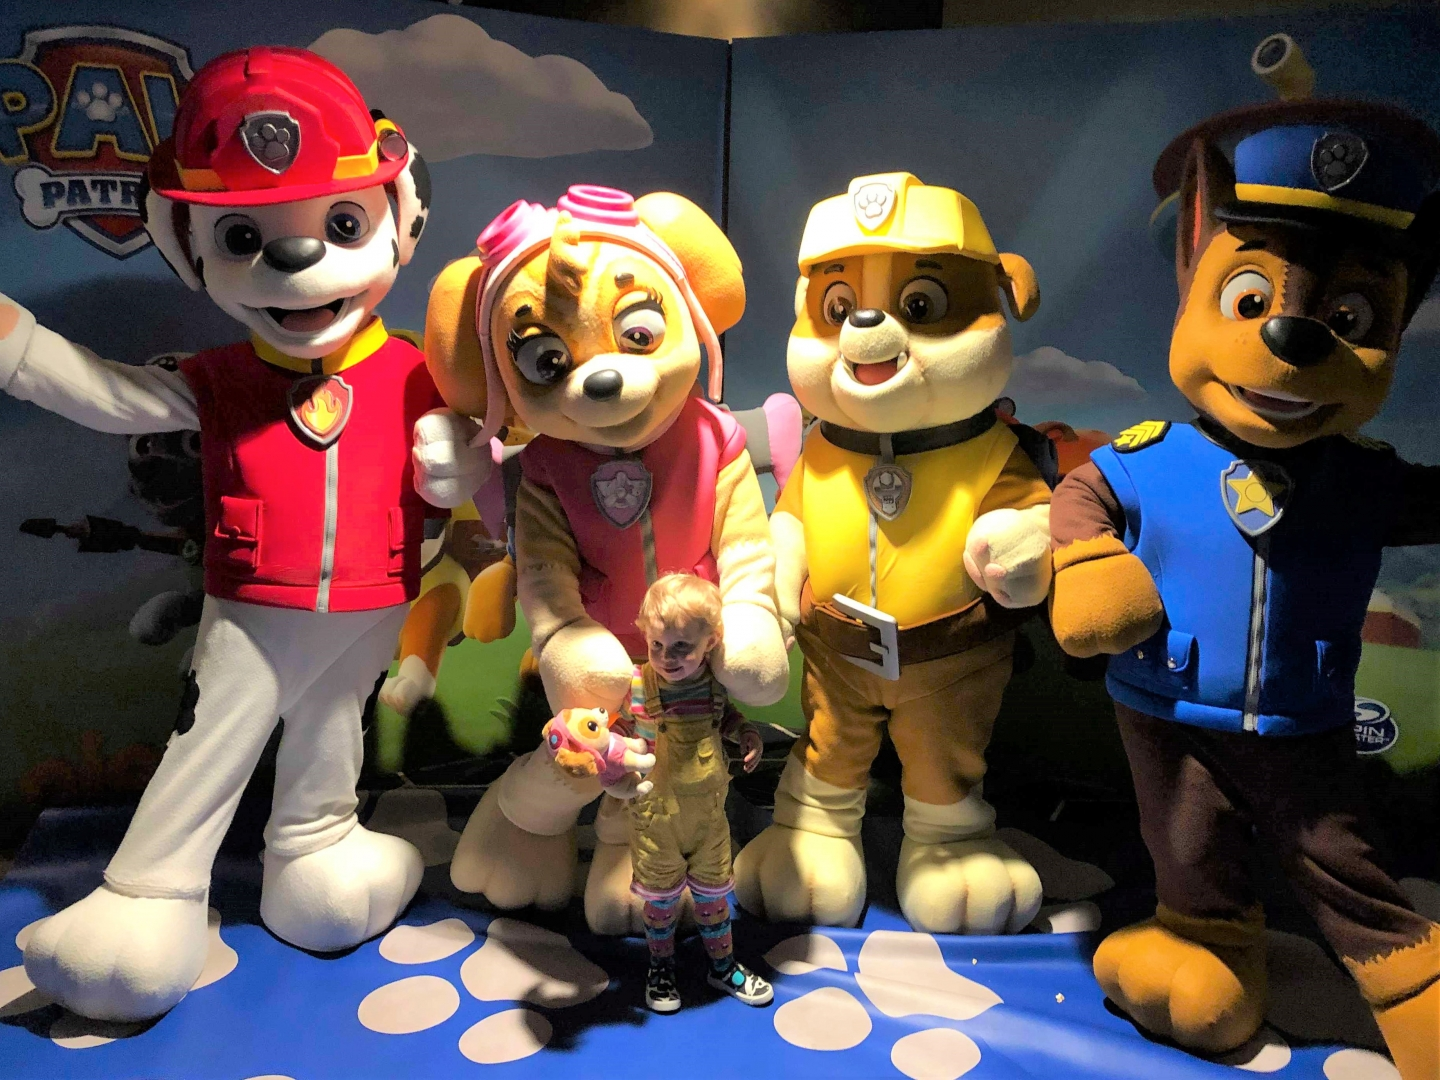 Marshall, Skye, Rubble and Chase at PAW Patrol: Mighty Pups Showcase Cinema preview